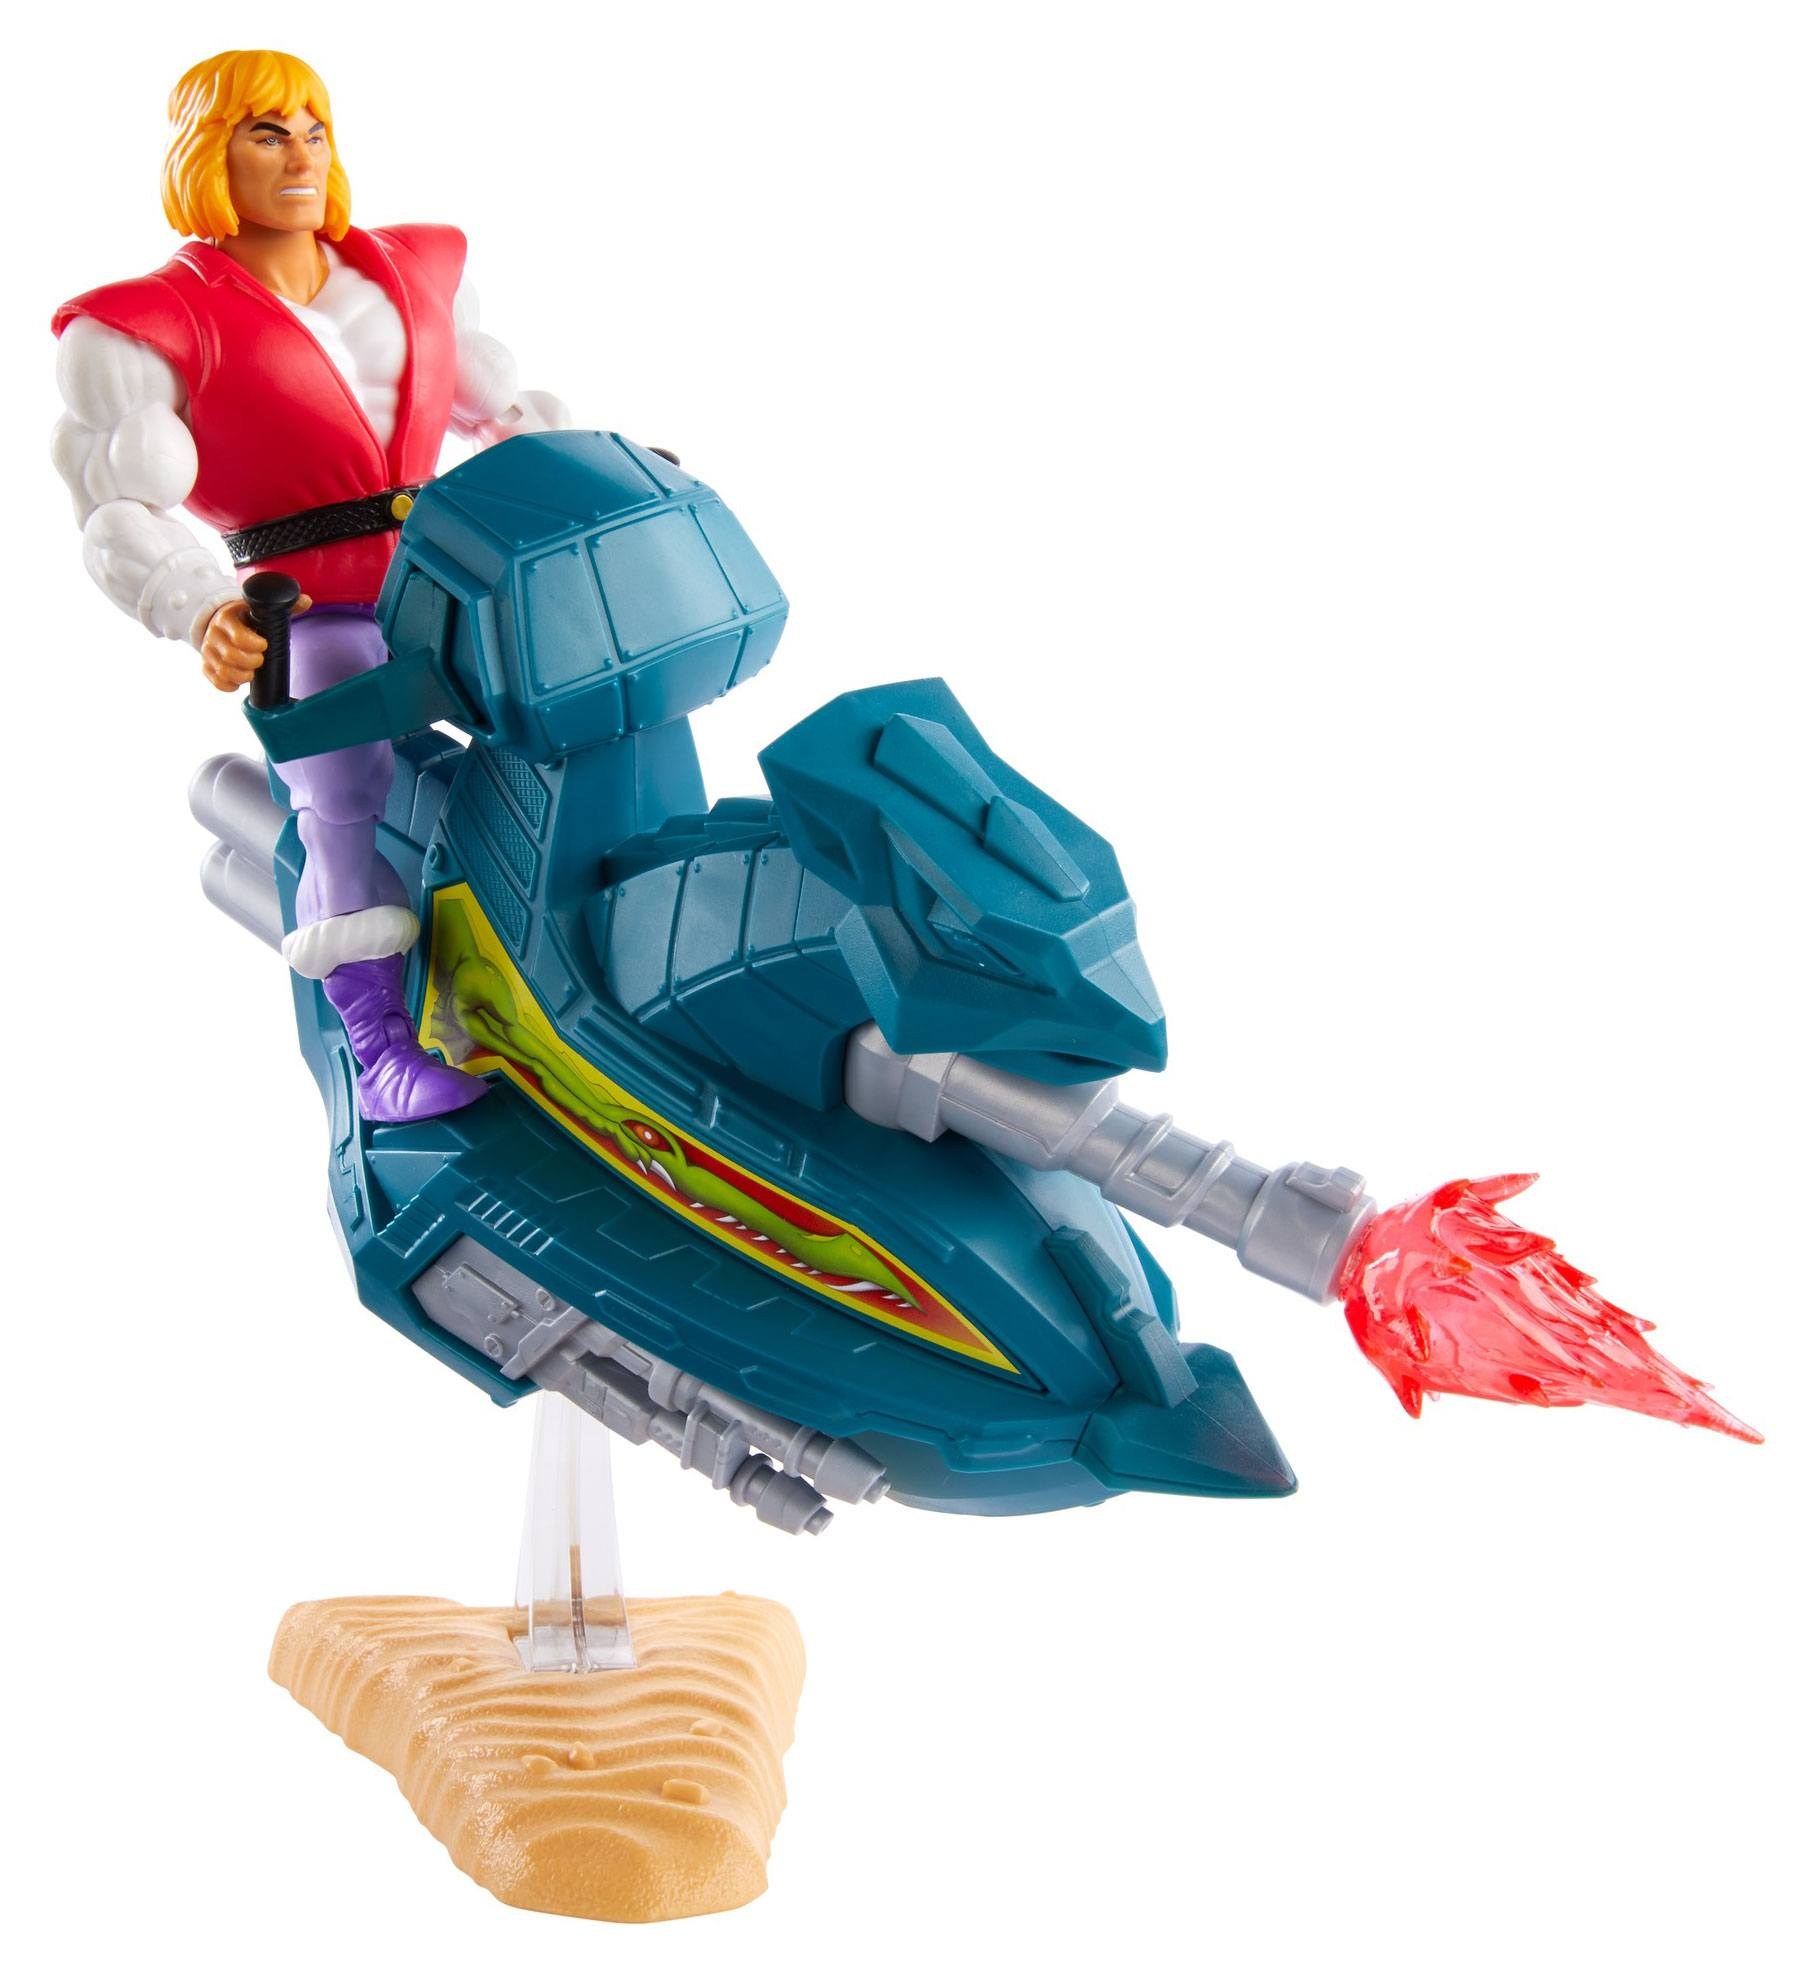 Masters of the Universe Origins Actionfigur 2020 Prince Adam with Sky Sled 14 cm